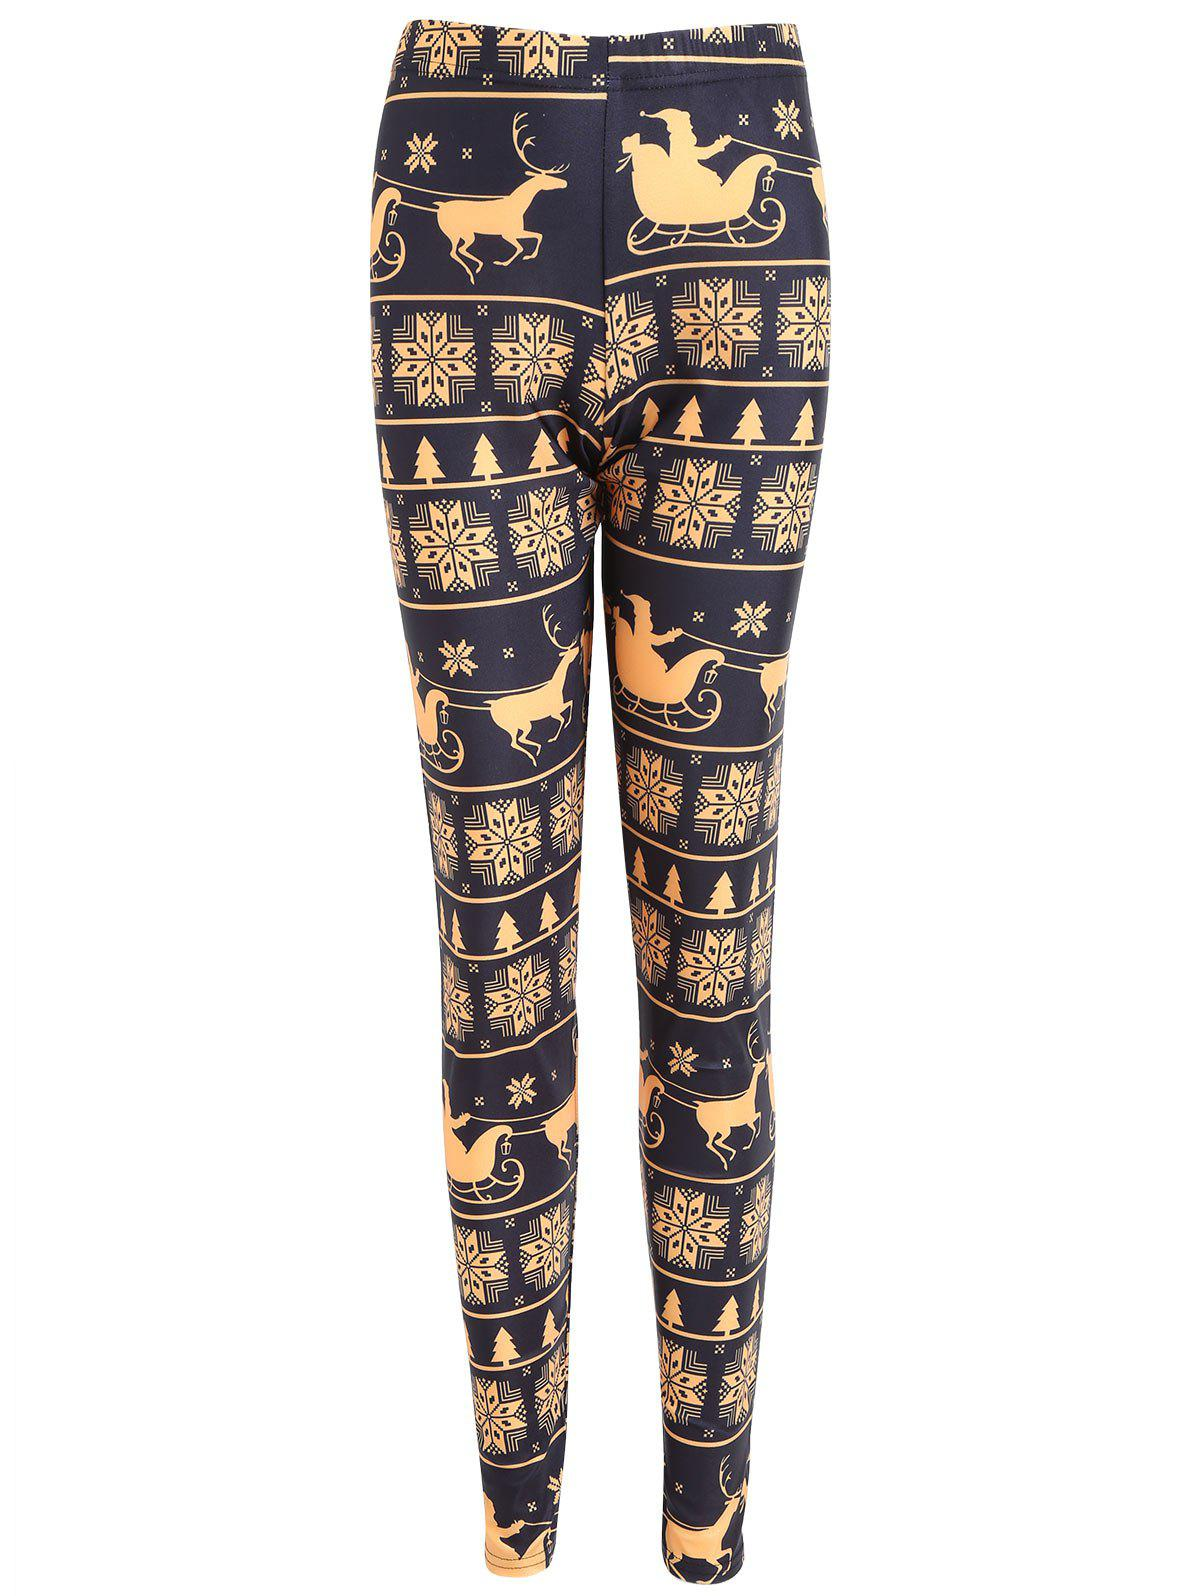 Christmas Snowflake Elk Print Plus Size LeggingsWOMEN<br><br>Size: 5XL; Color: BLACK; Style: Fashion; Length: Normal; Material: Cotton,Polyester,Spandex; Fit Type: Skinny; Waist Type: High; Closure Type: Elastic Waist; Pattern Type: Print; Pant Style: Pencil Pants; Weight: 0.2100kg; Package Contents: 1 x Leggings;